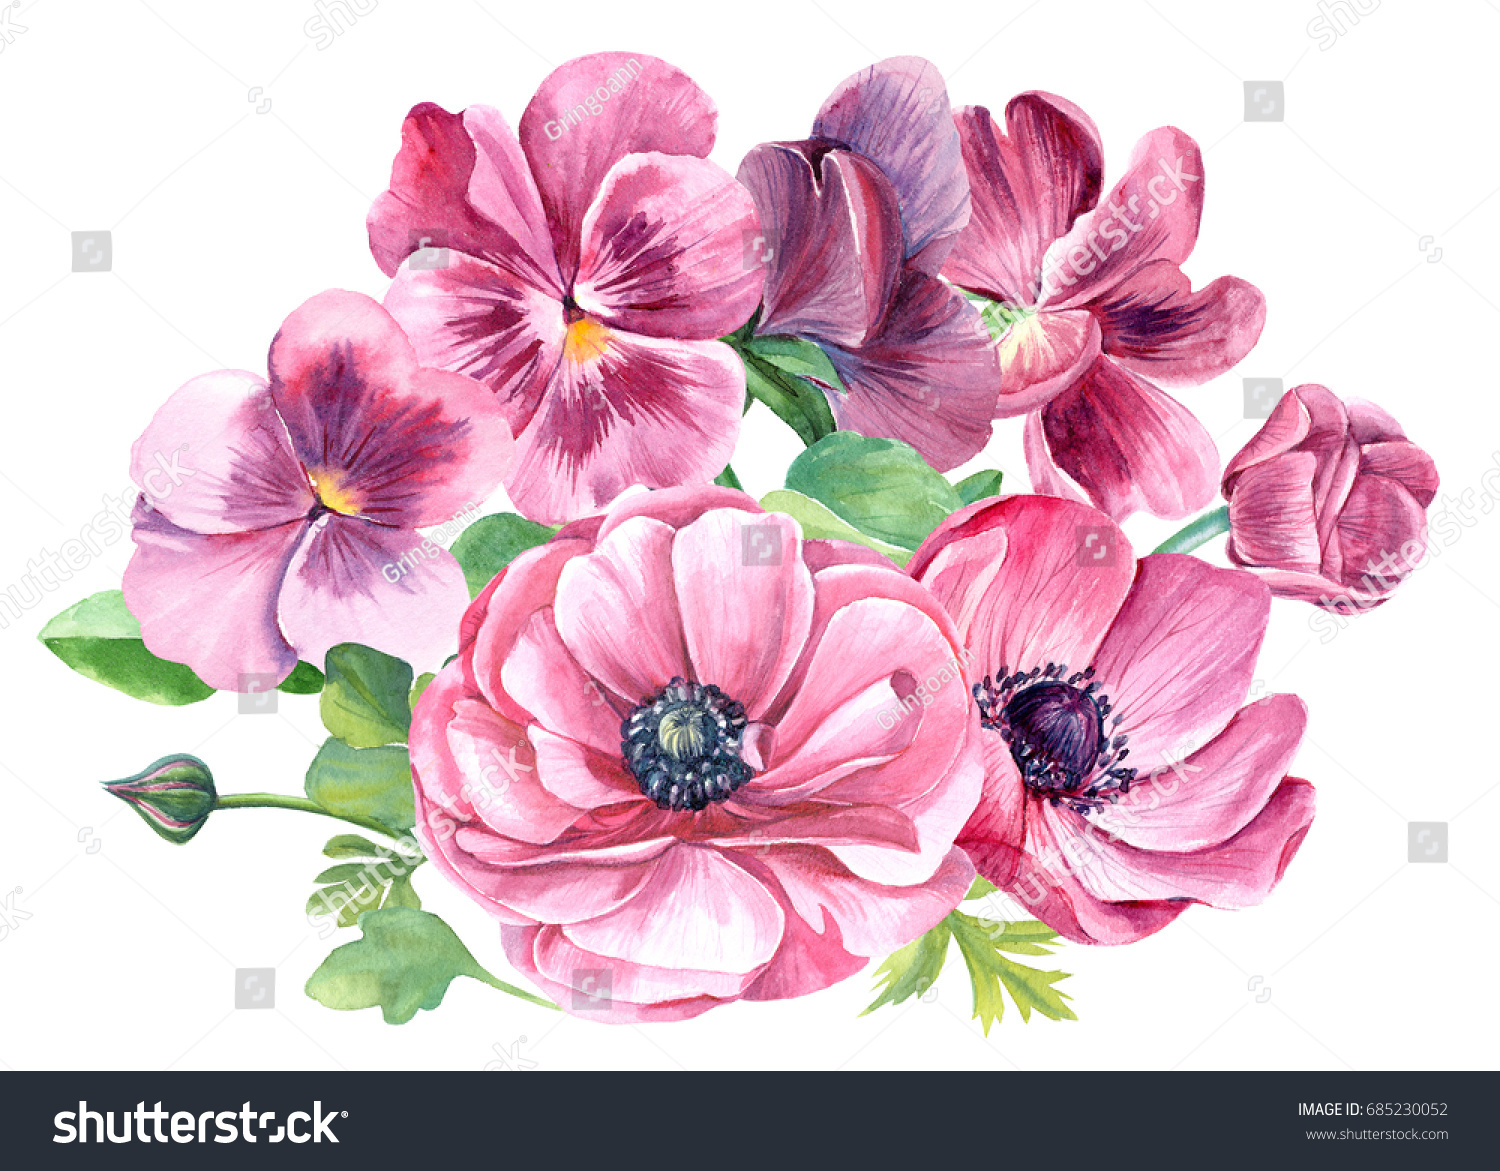 Colorful Floral Bouquet Pink Pansy Anemones Stock Illustration